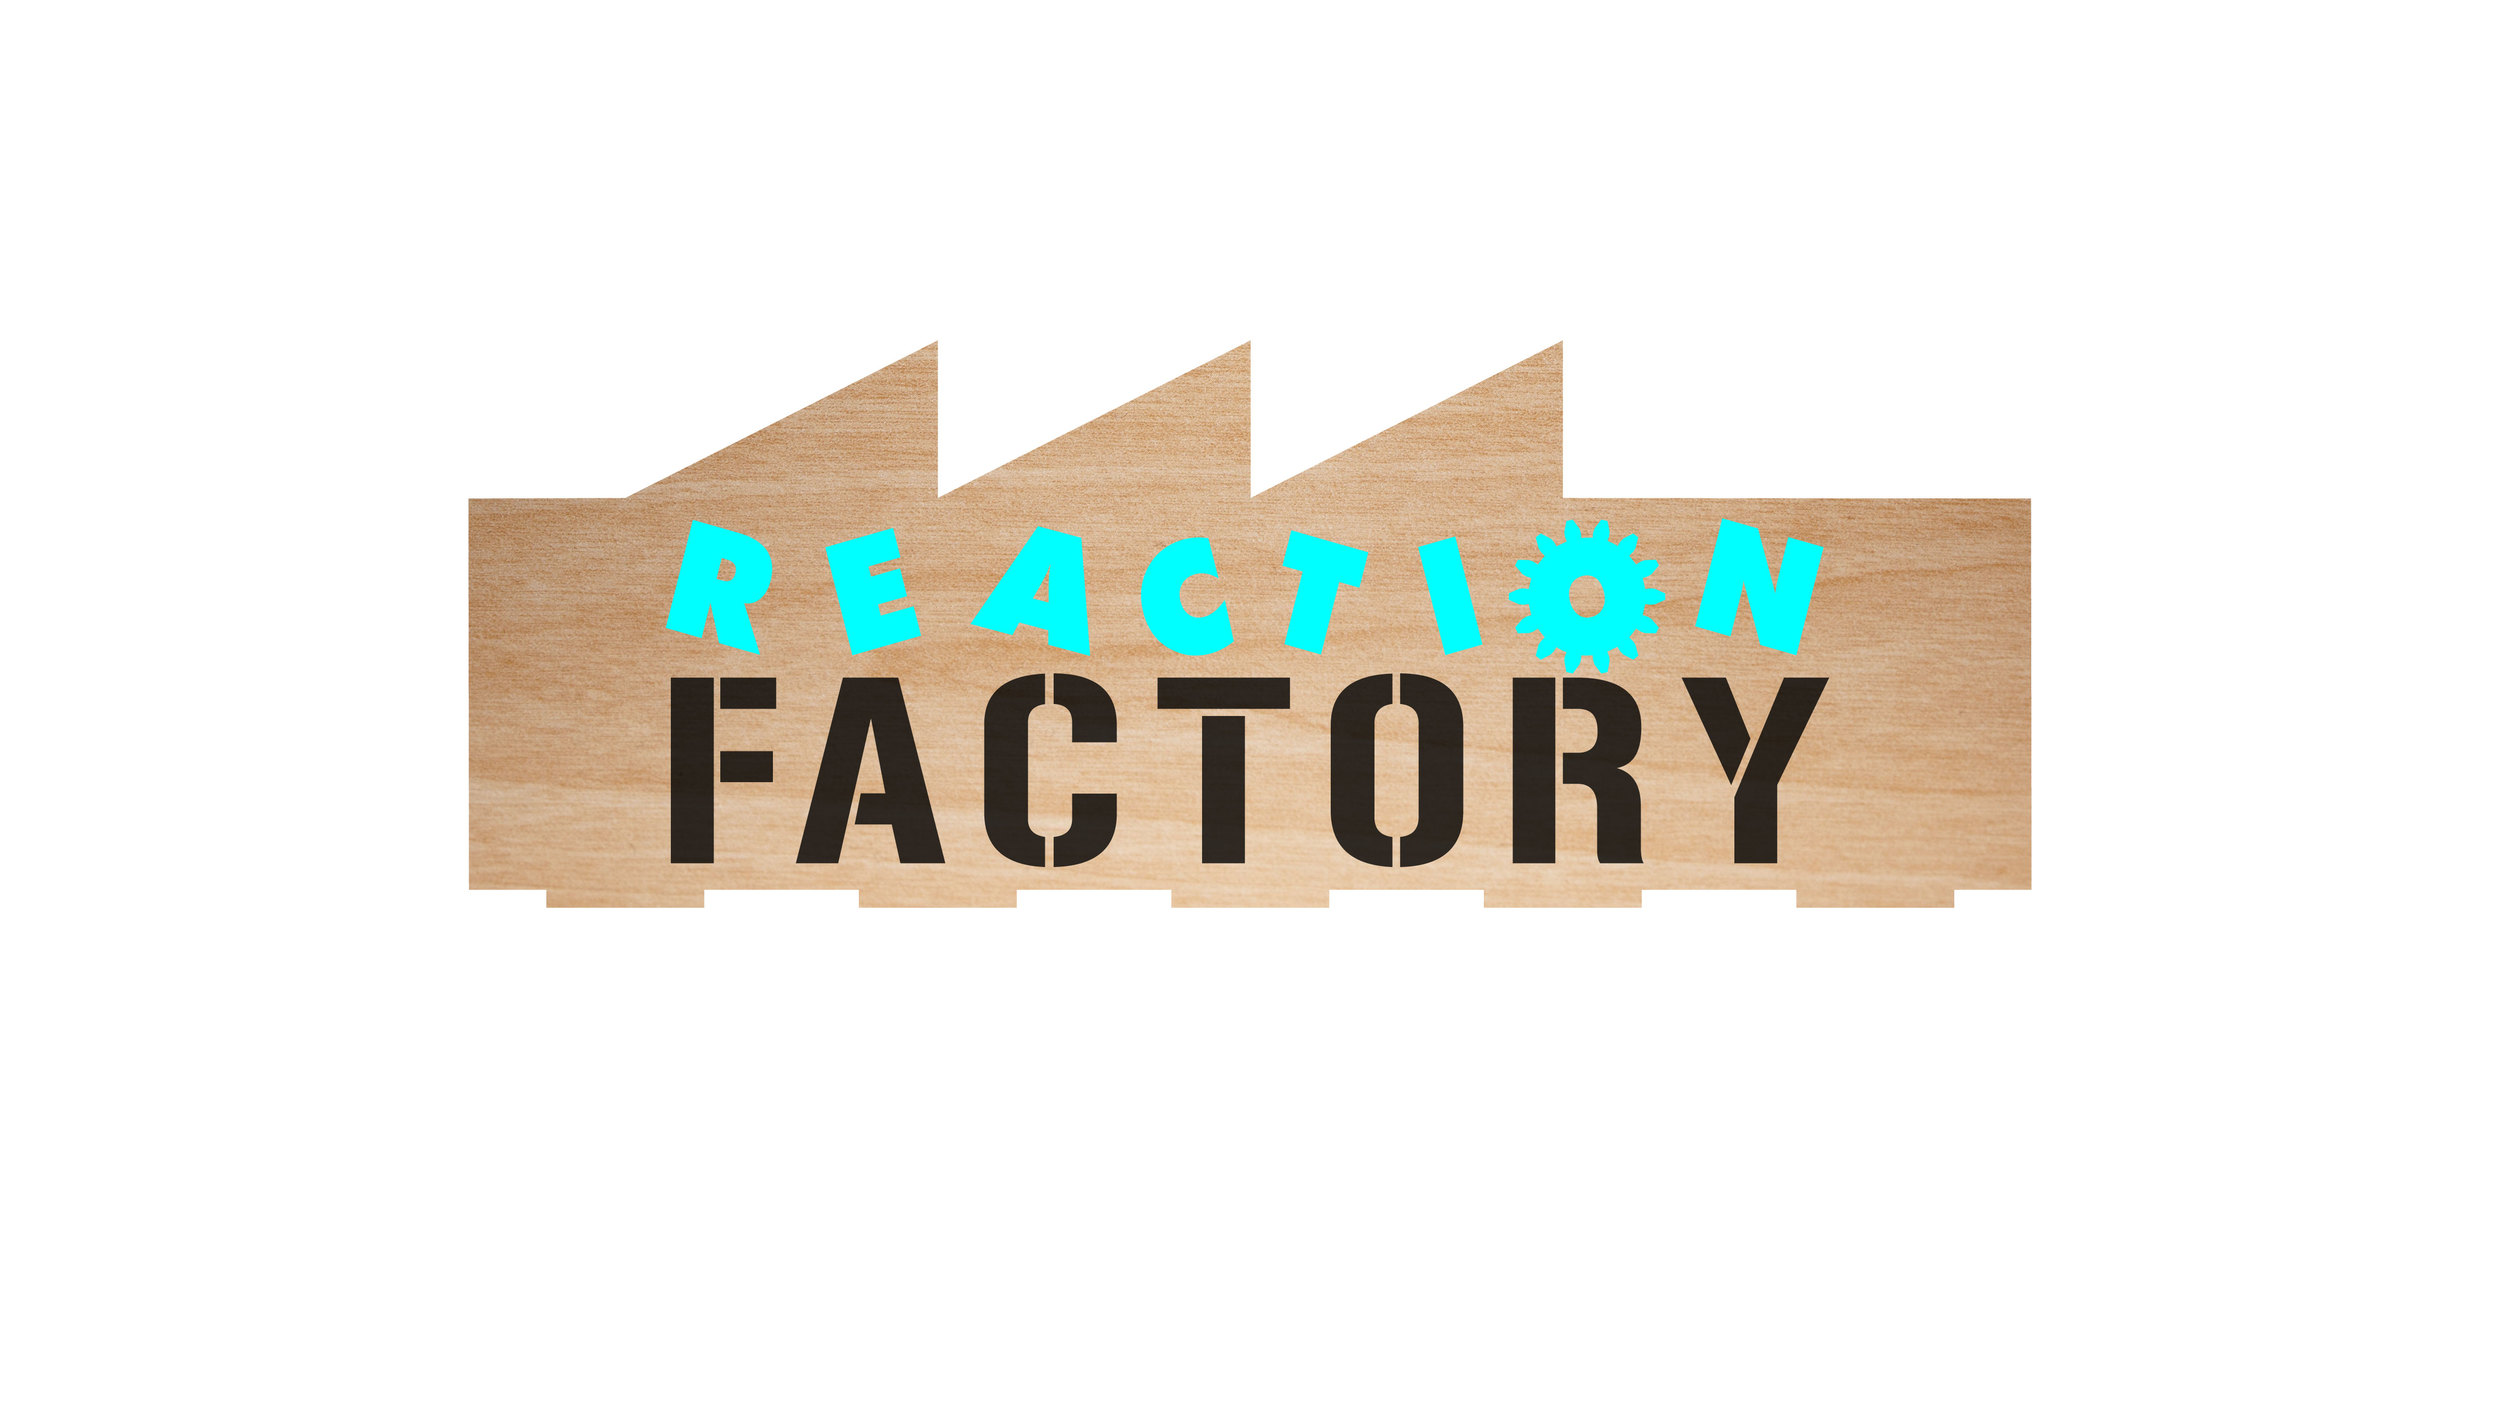 reaction factory logo.jpg